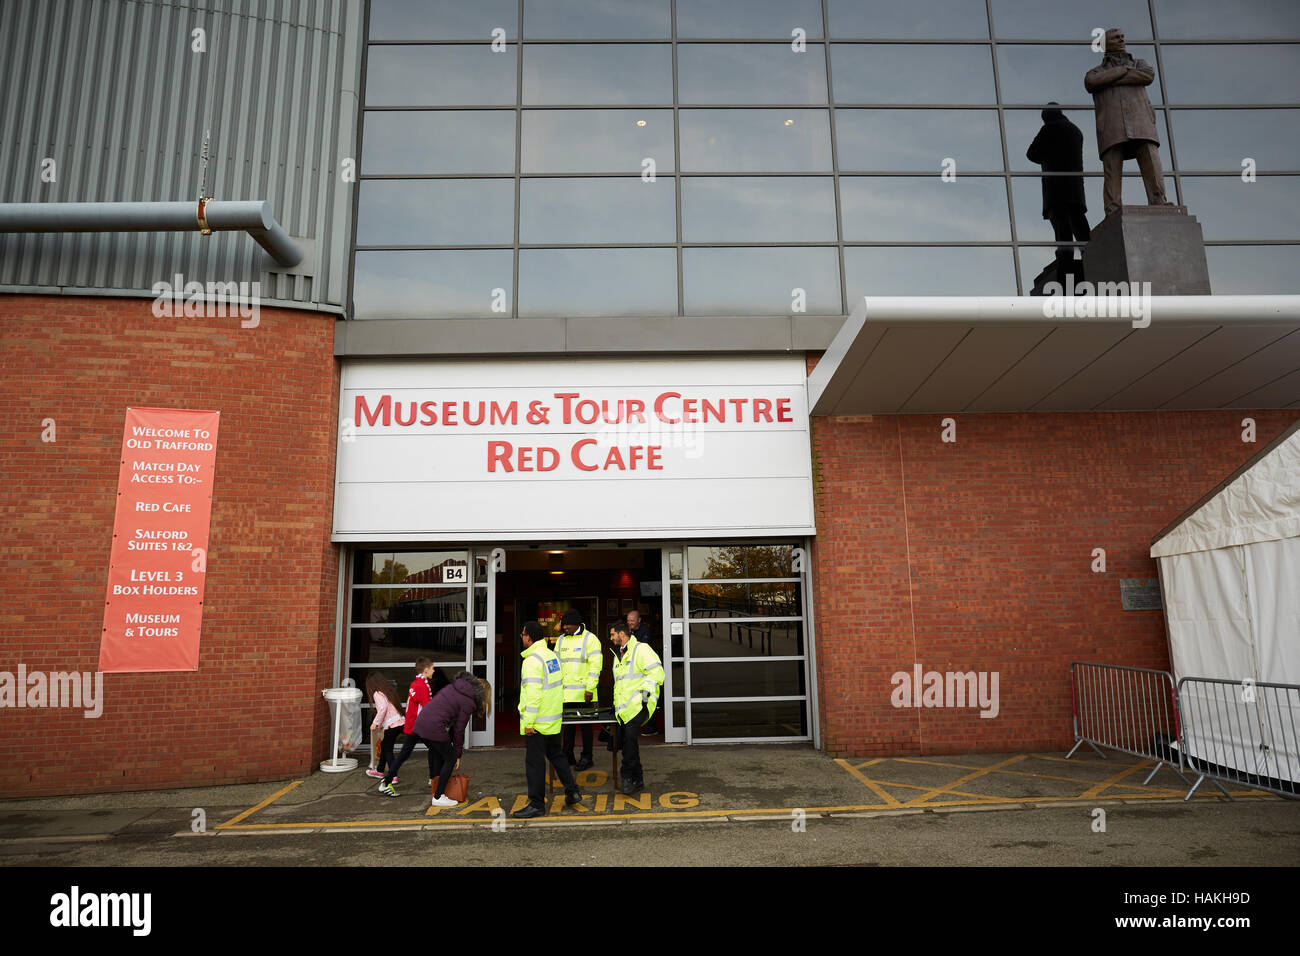 manchester united tour entrance red cafe security outside searching stock photo alamy https www alamy com stock photo manchester united tour entrance red cafe security outside searching 127049817 html